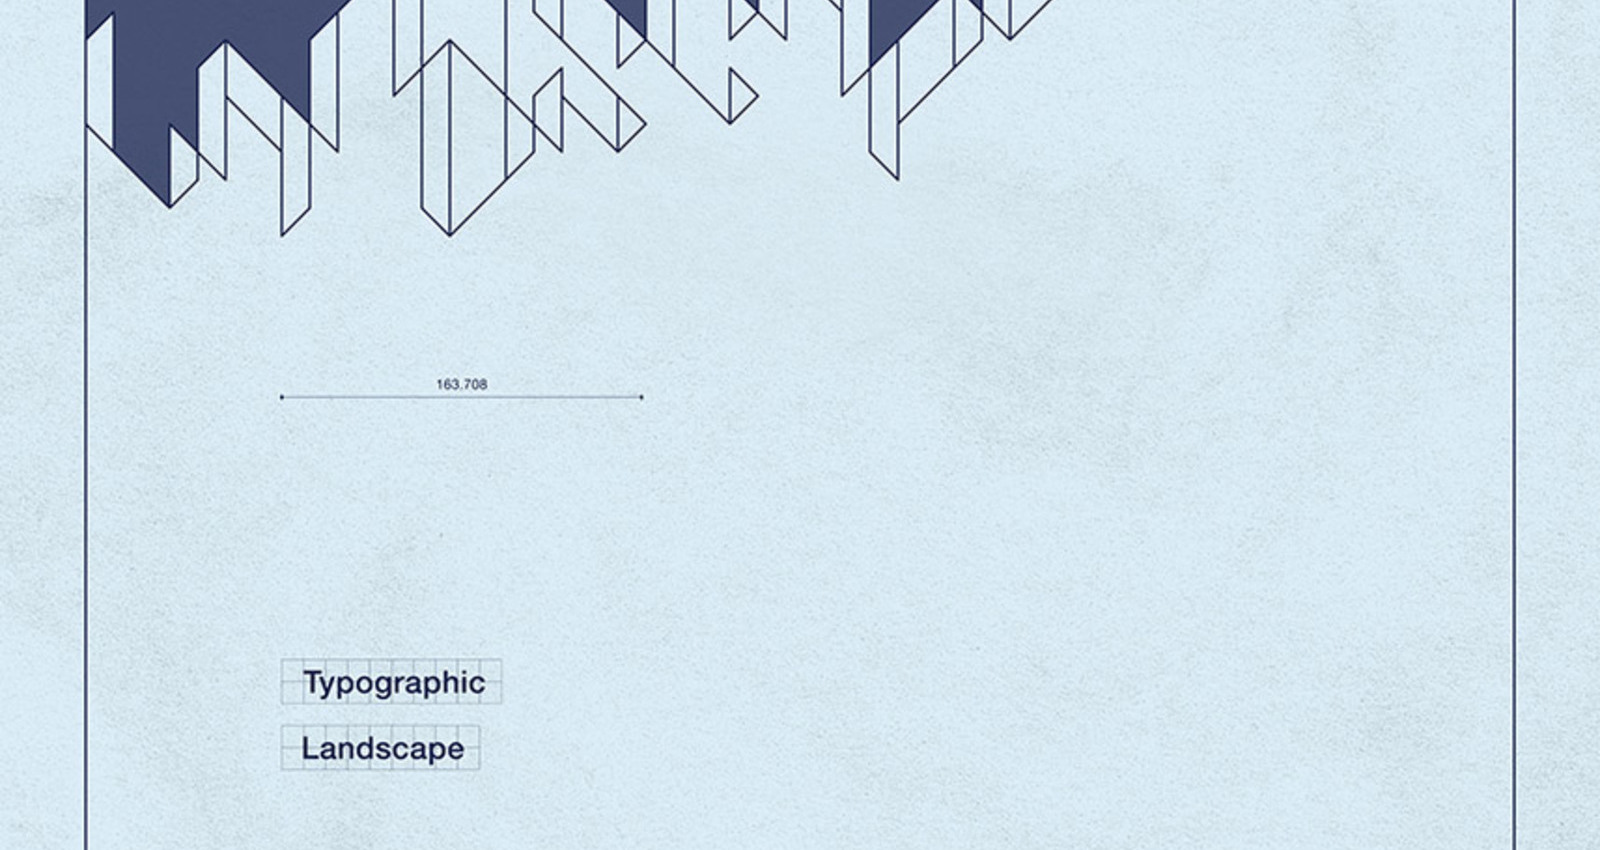 Blueprint of Typographic Landscape